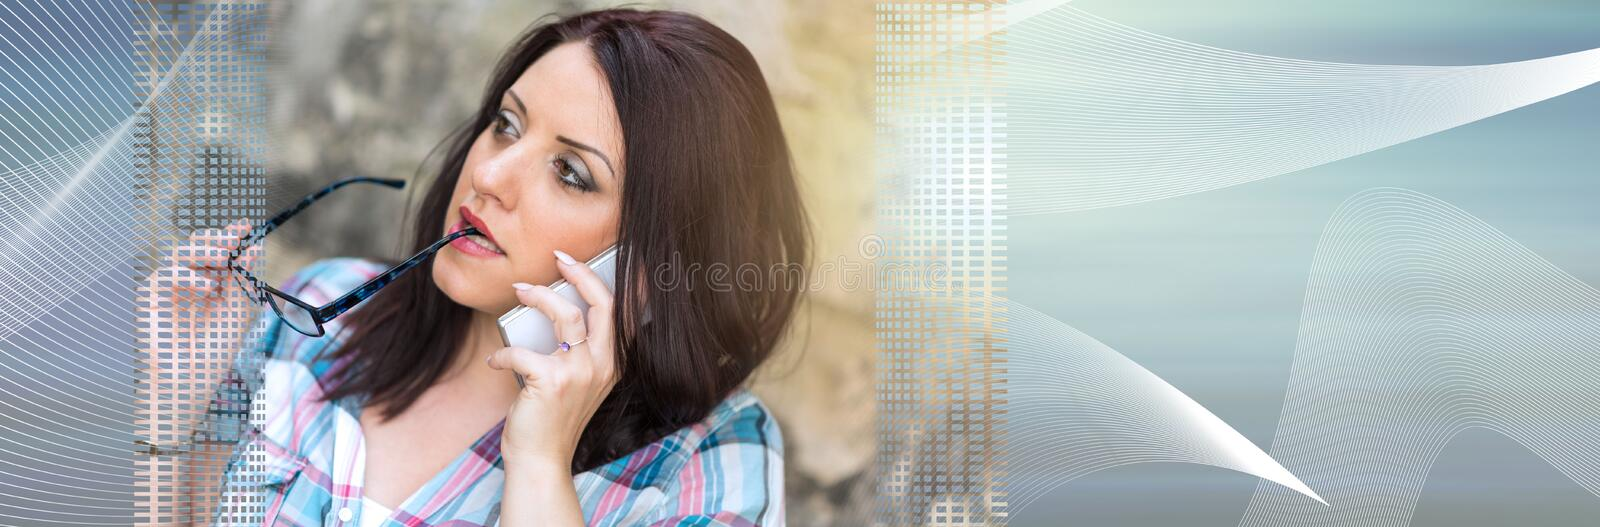 Portrait of beautiful young woman using phone, light effect. panoramic banner stock photo